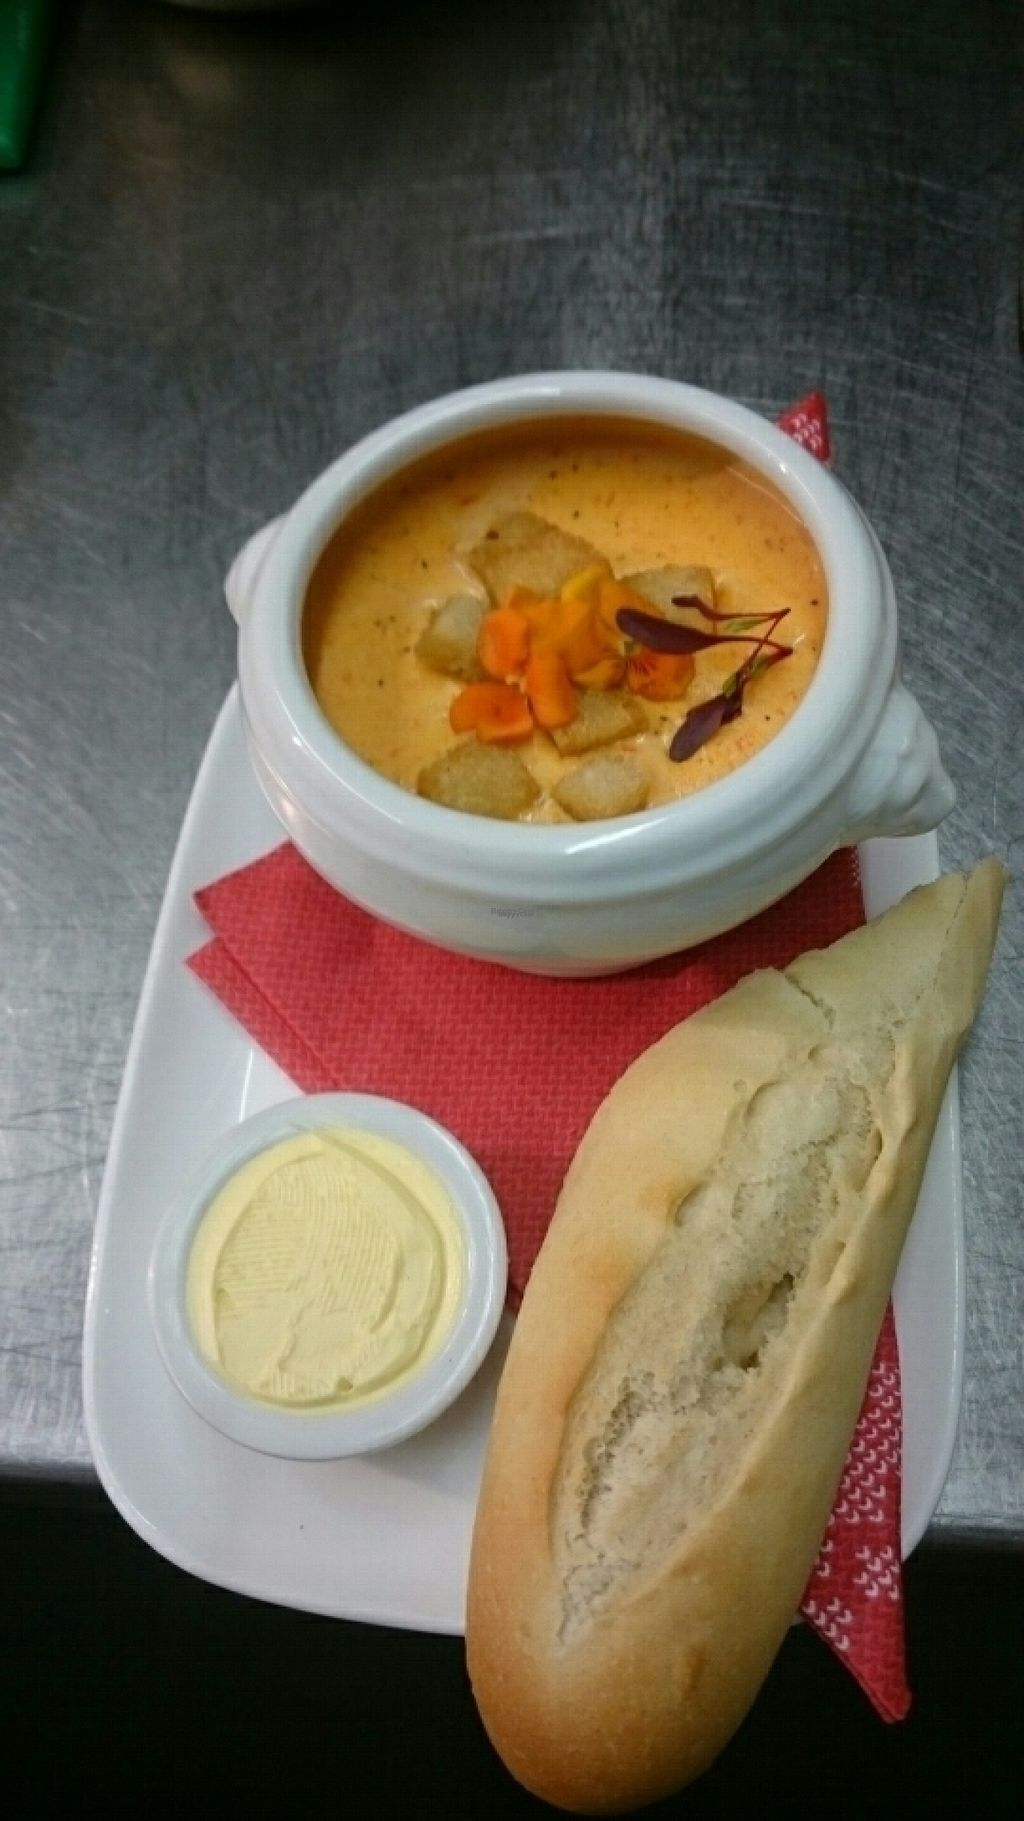 """Photo of The Farmer's Union Pub   by <a href=""""/members/profile/ANDREWS54"""">ANDREWS54</a> <br/>Xmas Menu roasted red pepper and ginger soup..  <br/> November 3, 2016  - <a href='/contact/abuse/image/80795/186395'>Report</a>"""